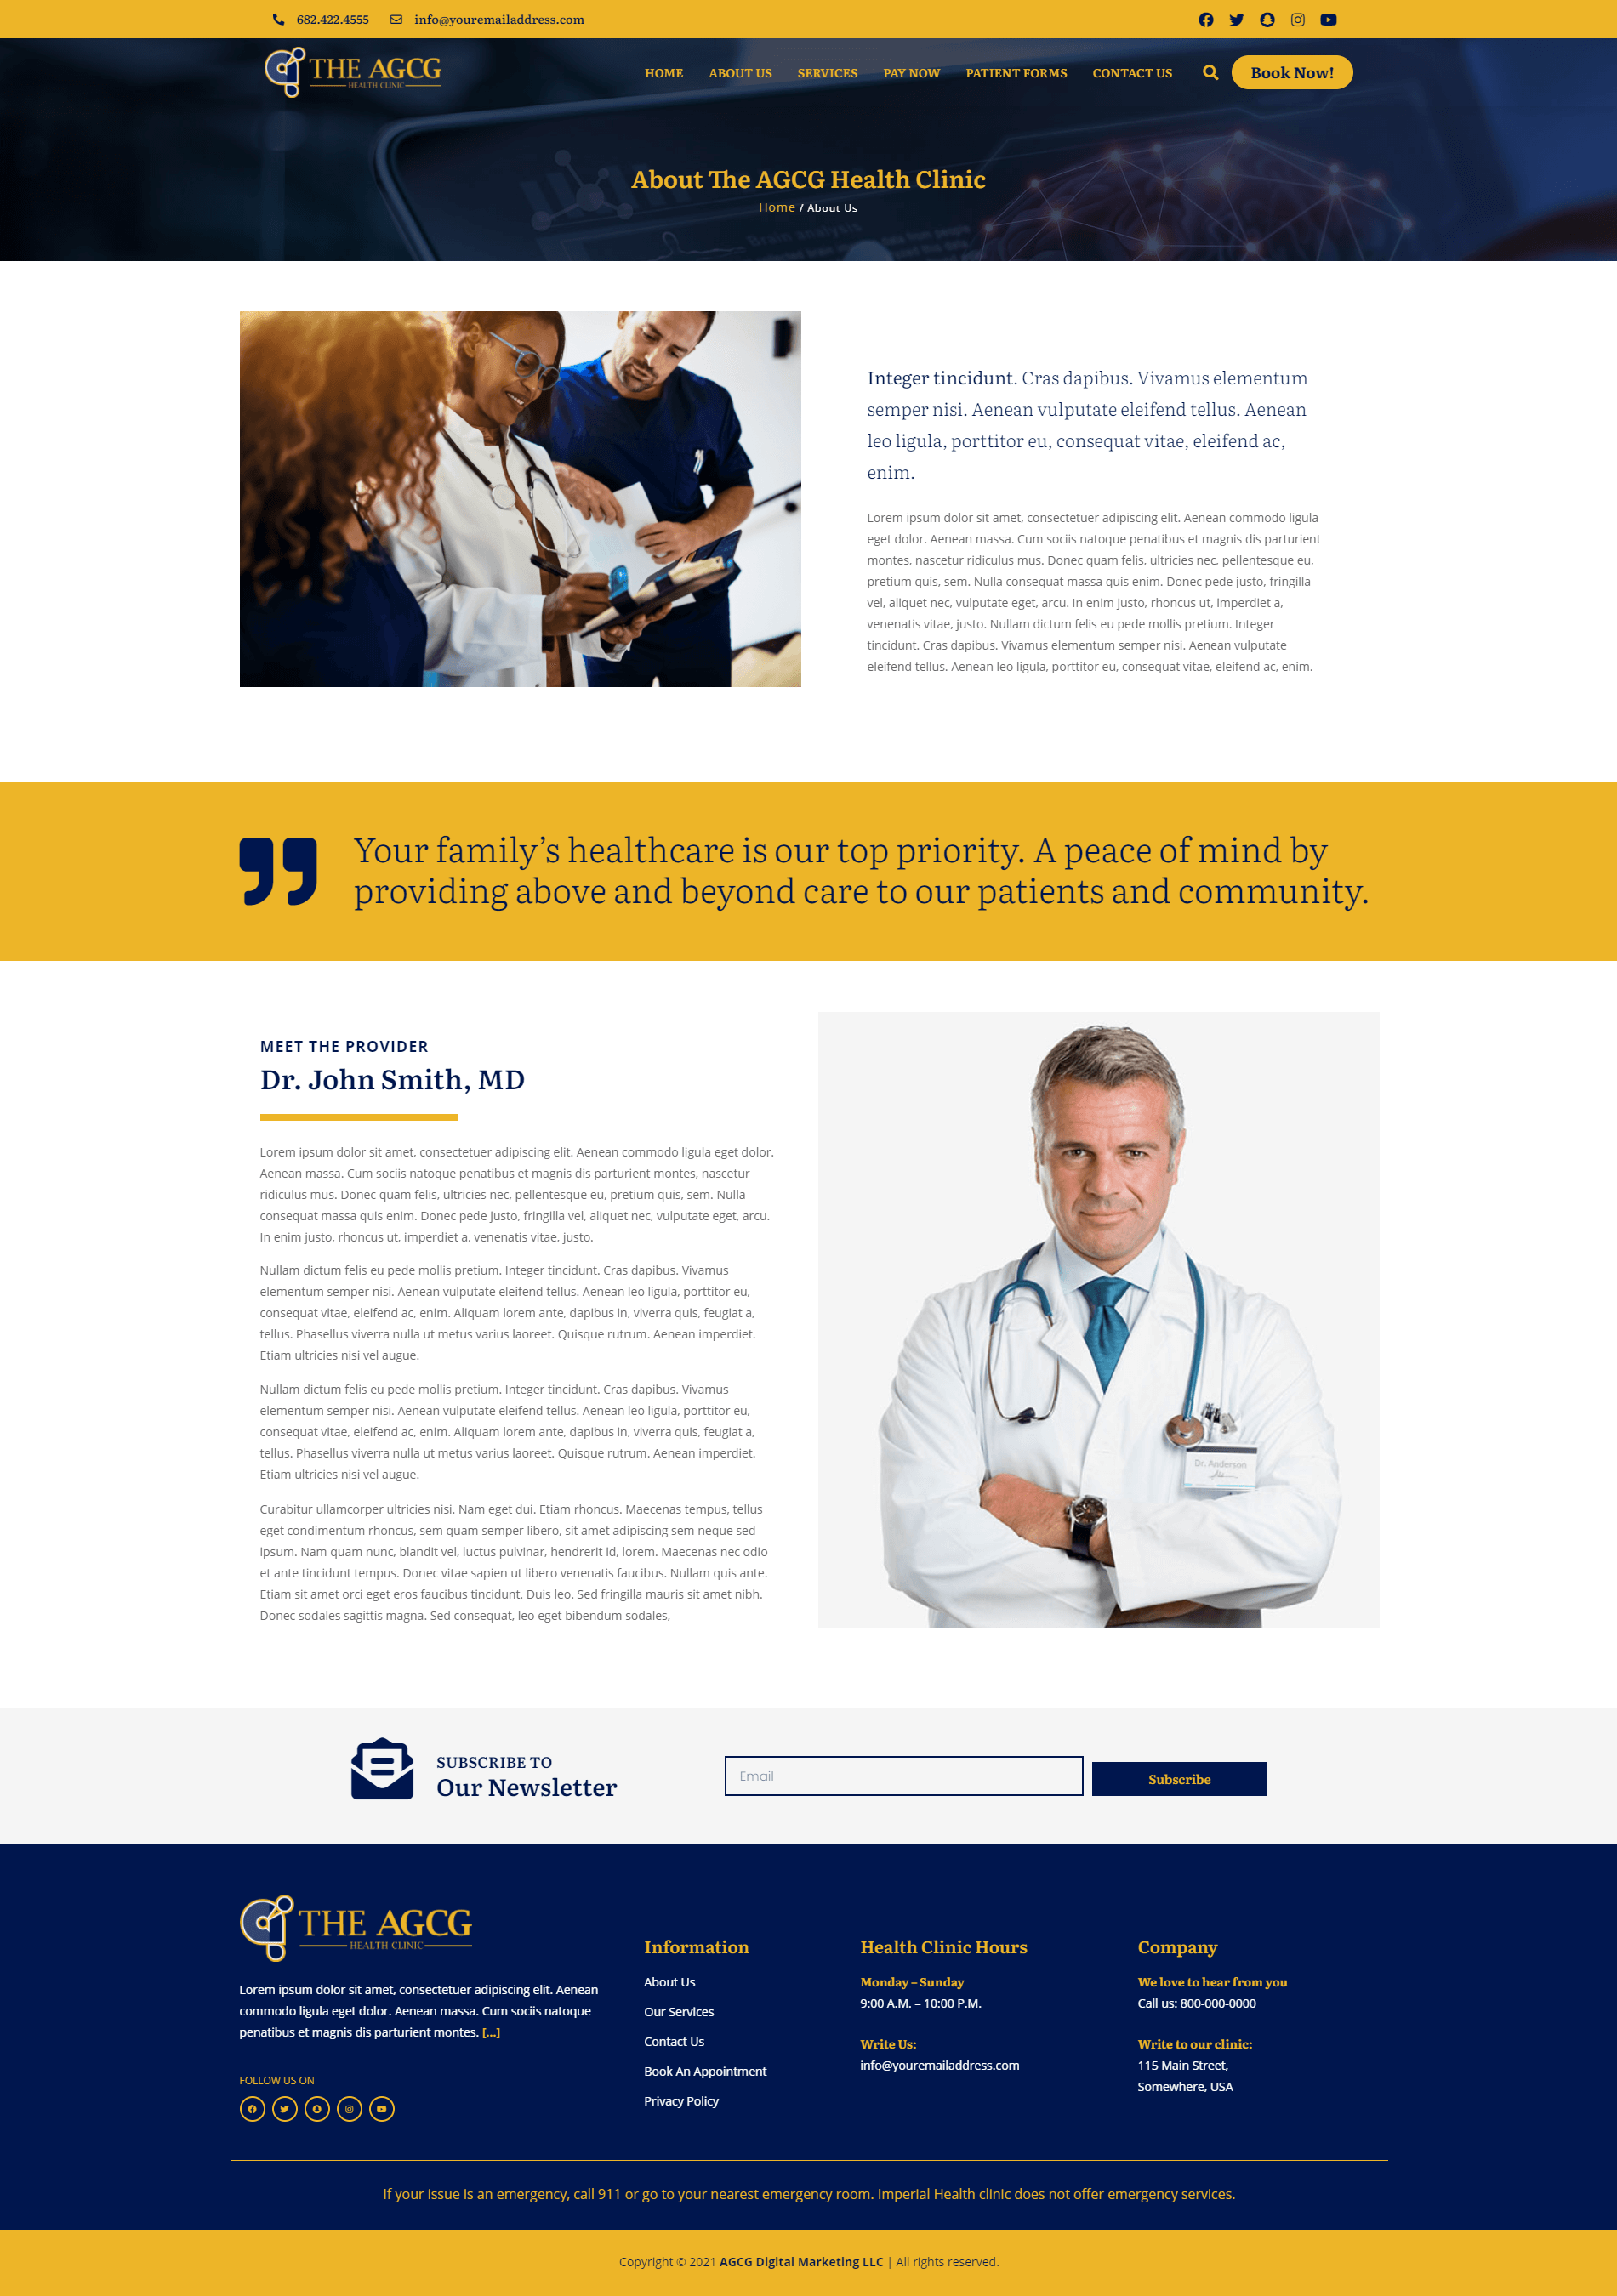 The AGCG Health Clinic About Us